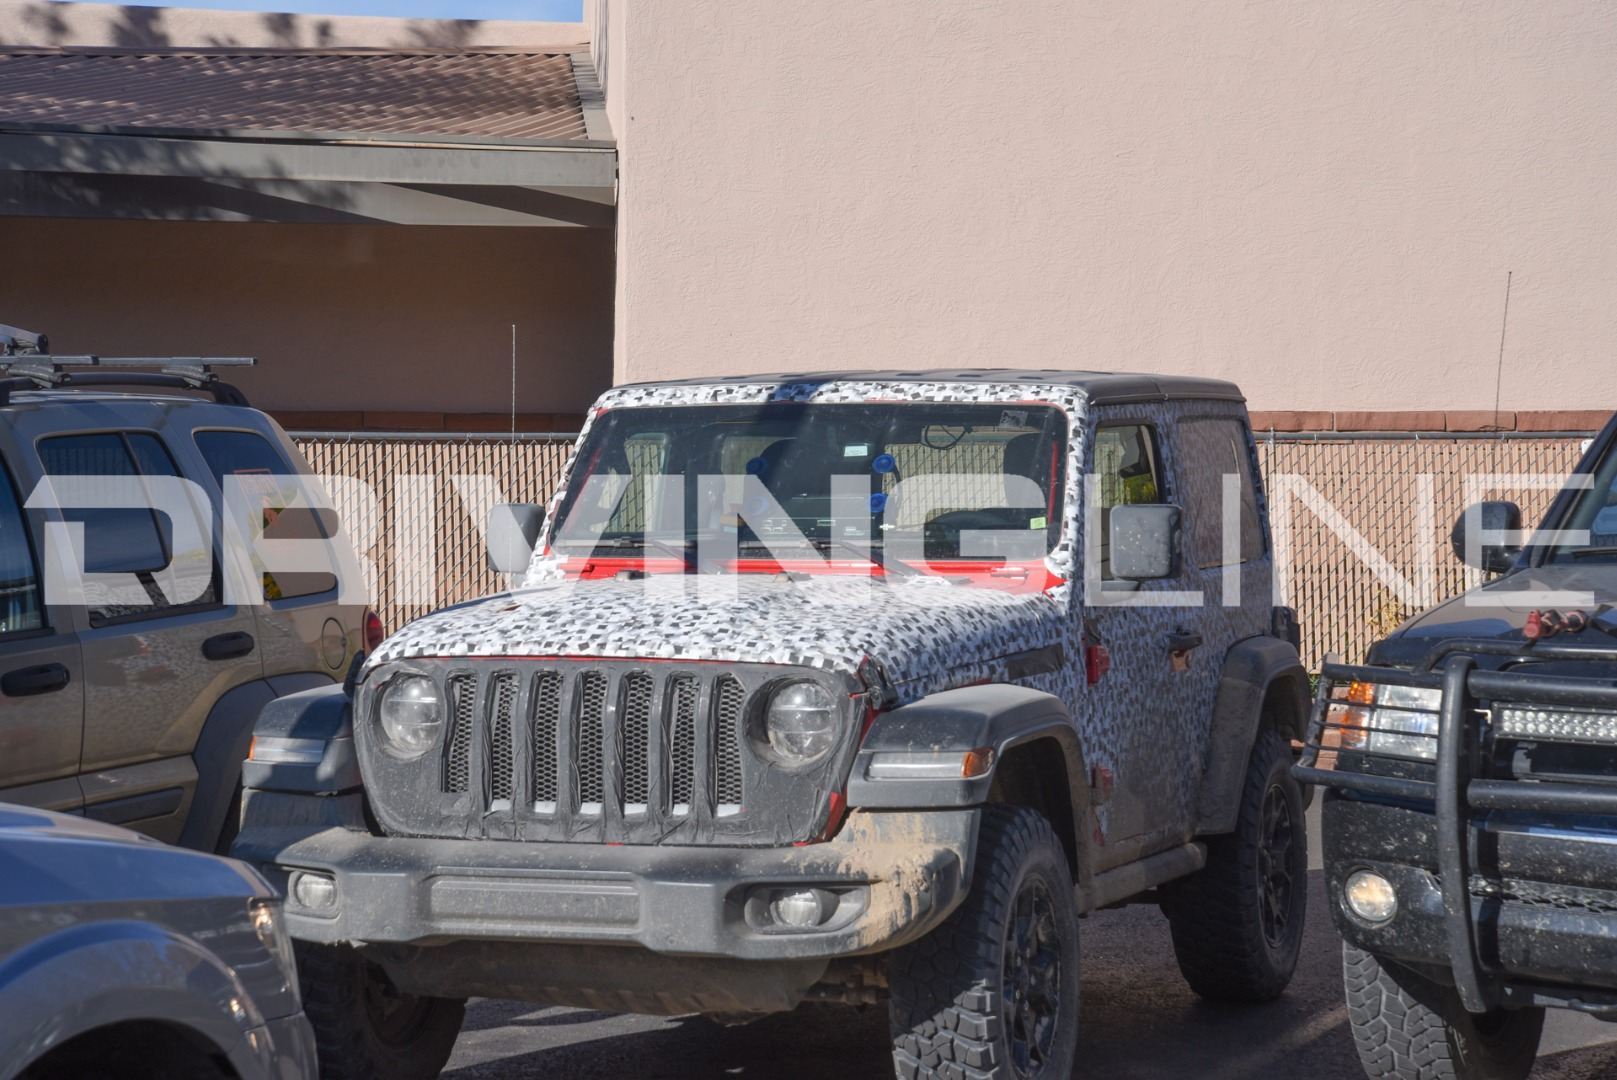 2018 jeep moab. plain 2018 spy photos of the 2018 jeep wrangler jl in moab utah  drivingline in jeep moab